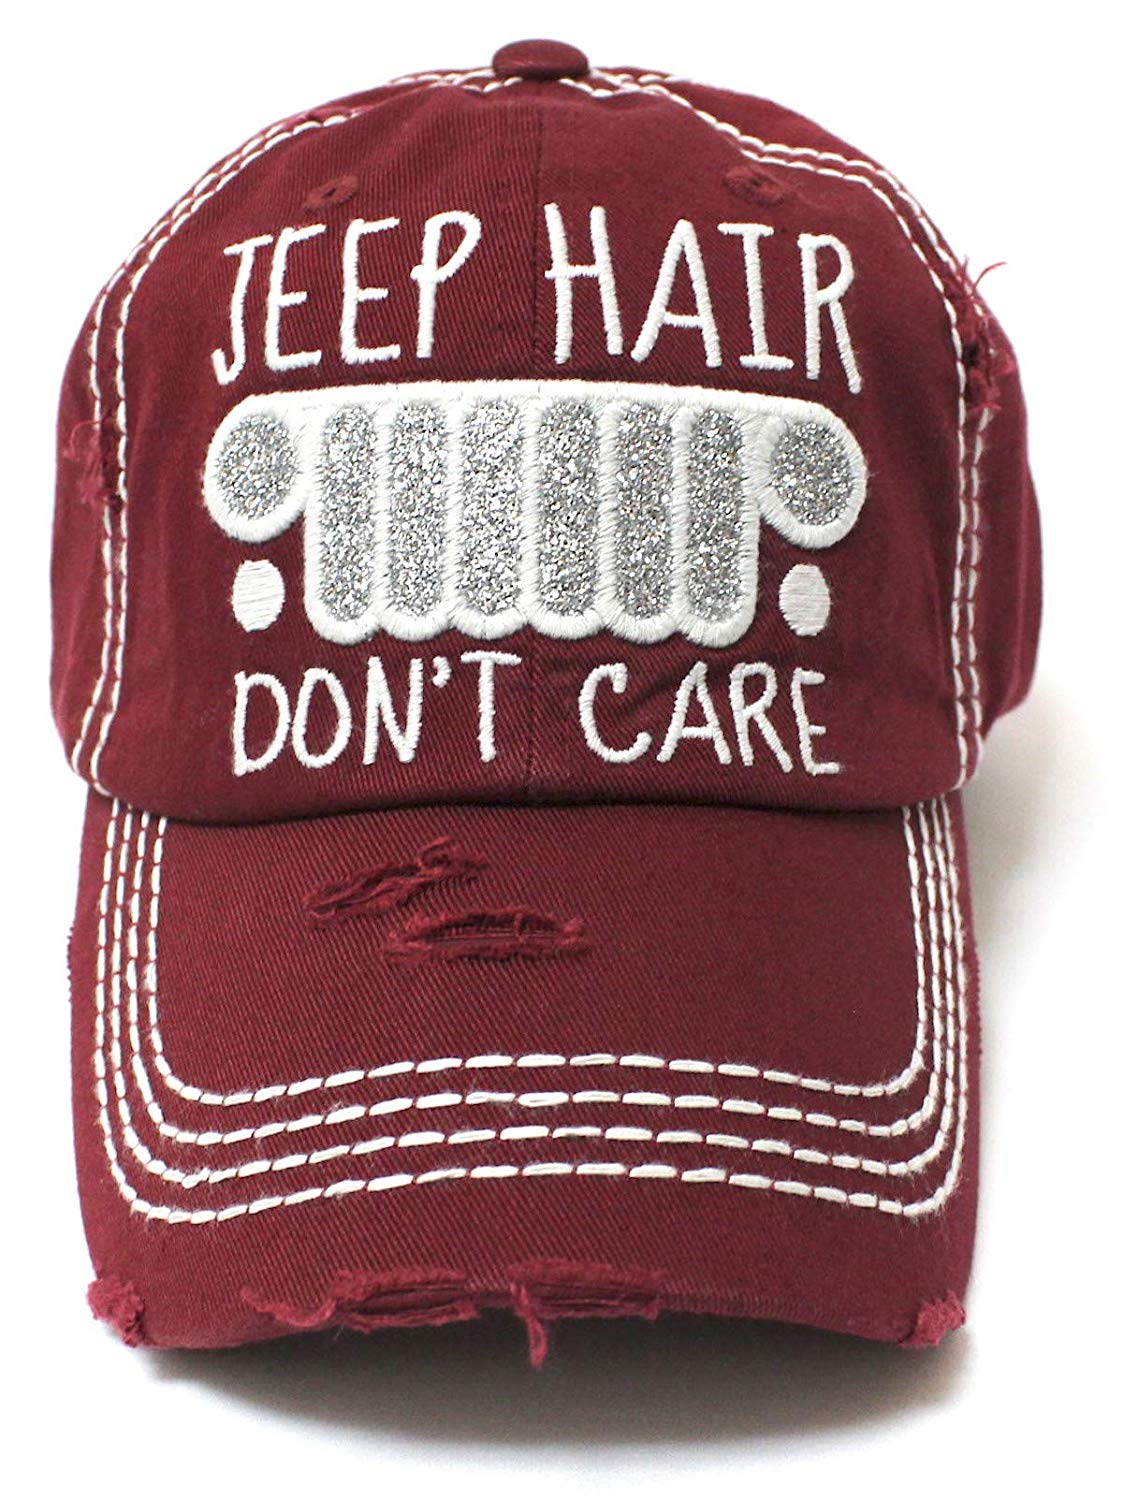 New! Burgundy Jeep Hair Don't Care Glitter Monogram Cap - Caps 'N Vintage